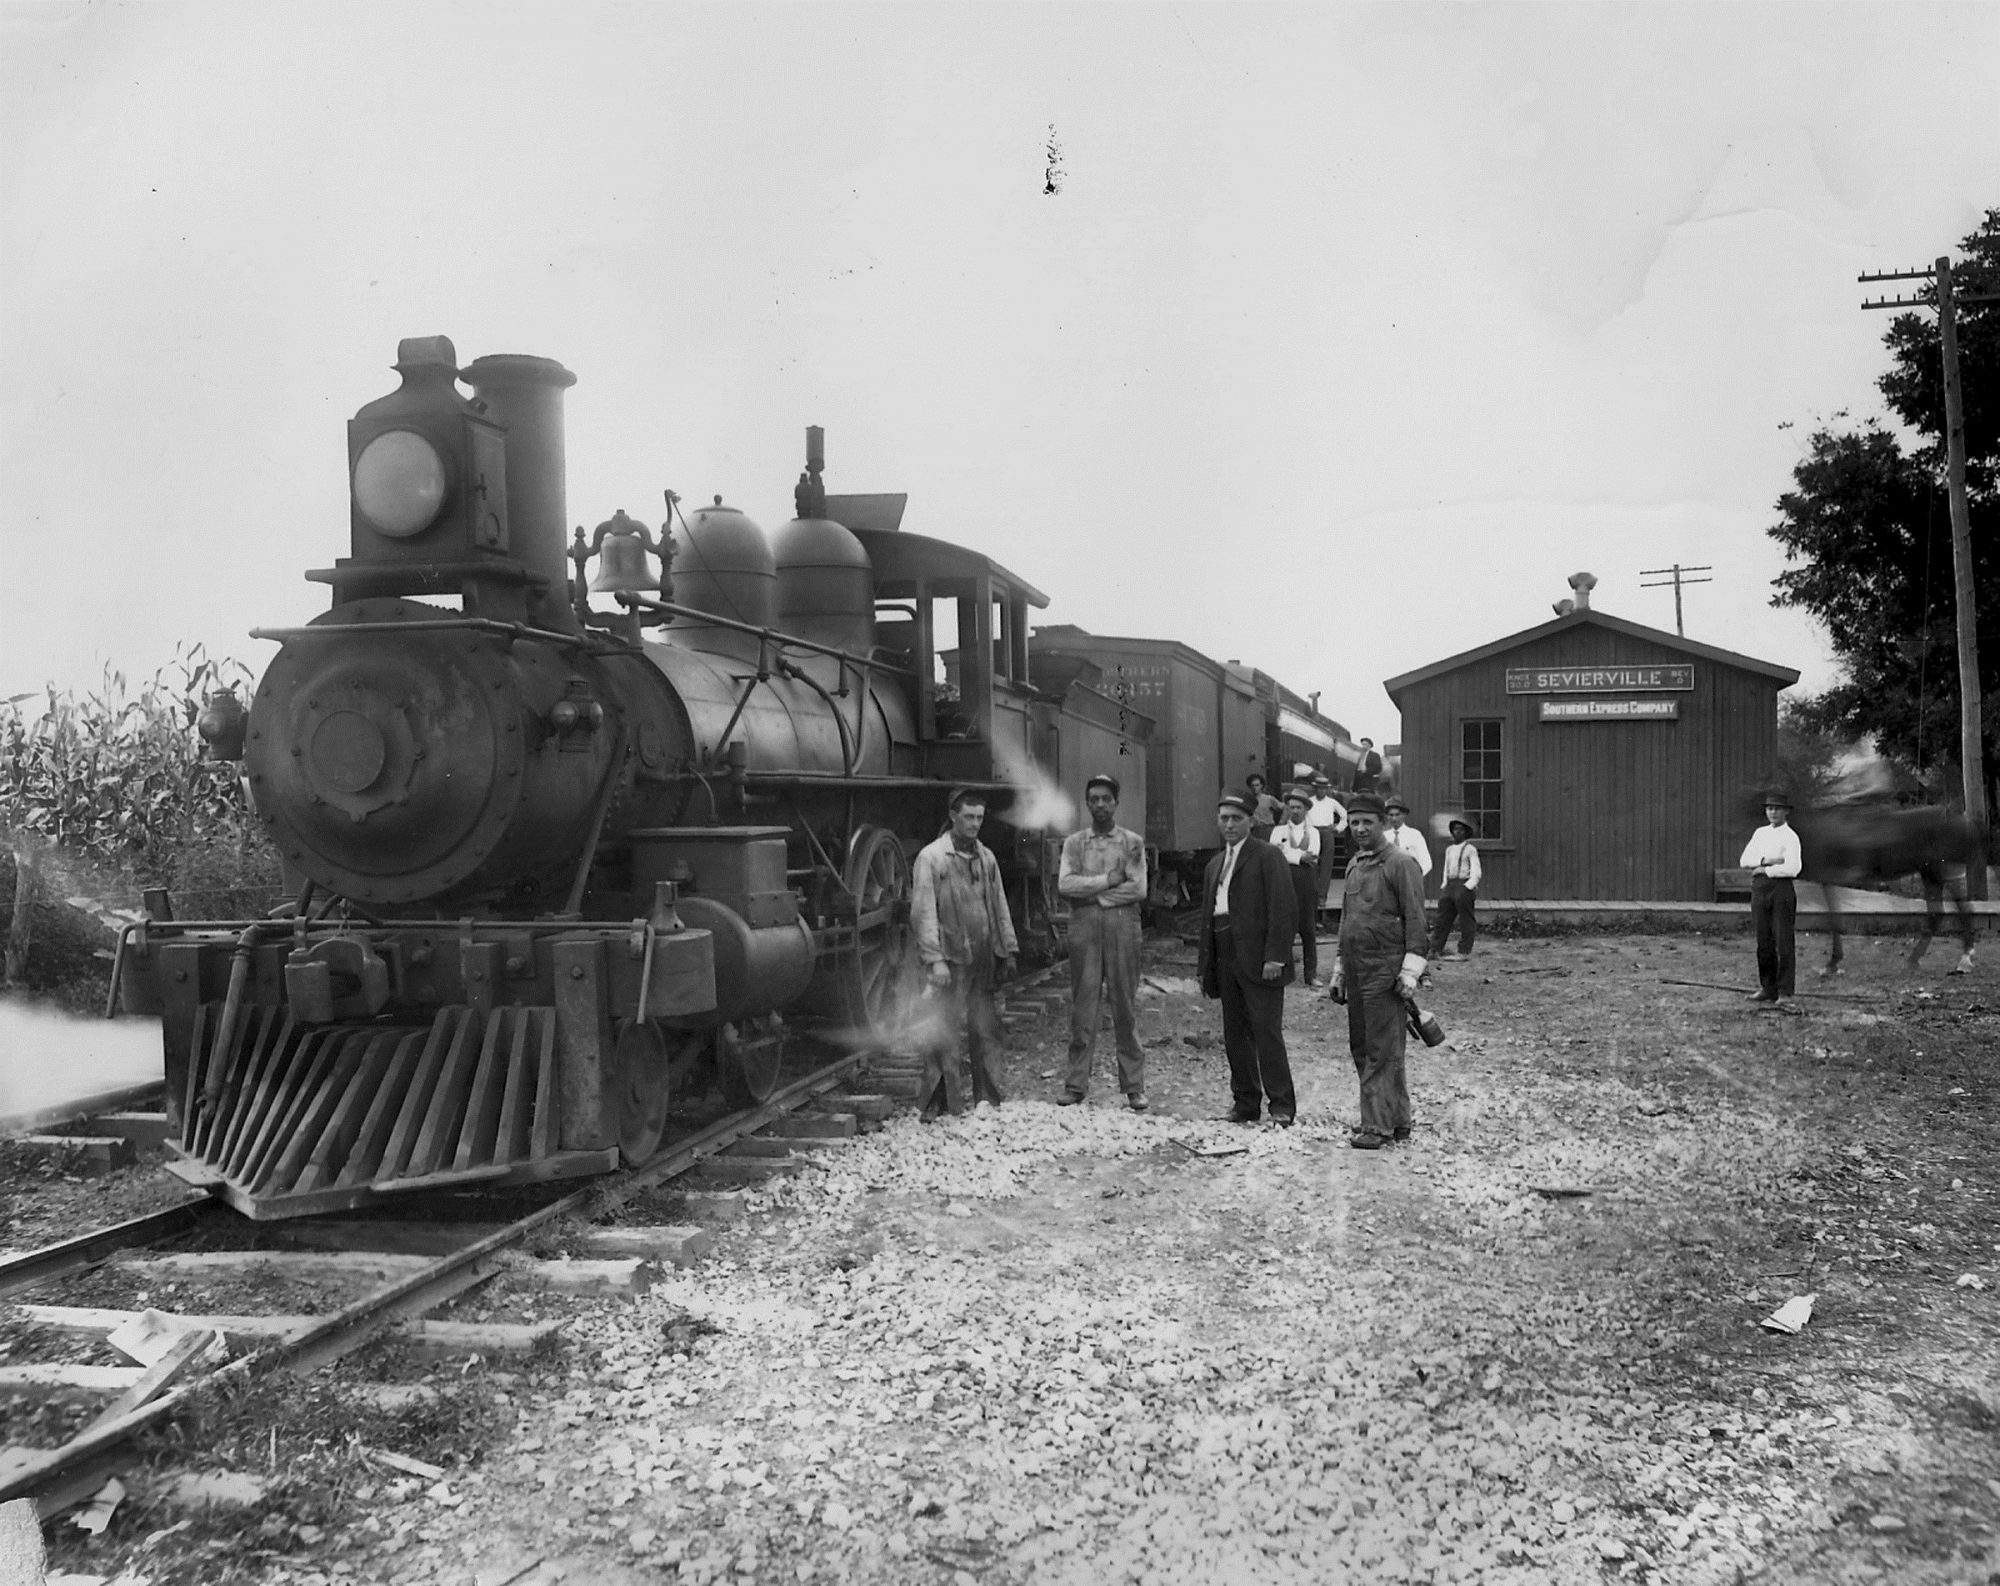 KS&E, first train to come to Sevierville 1910